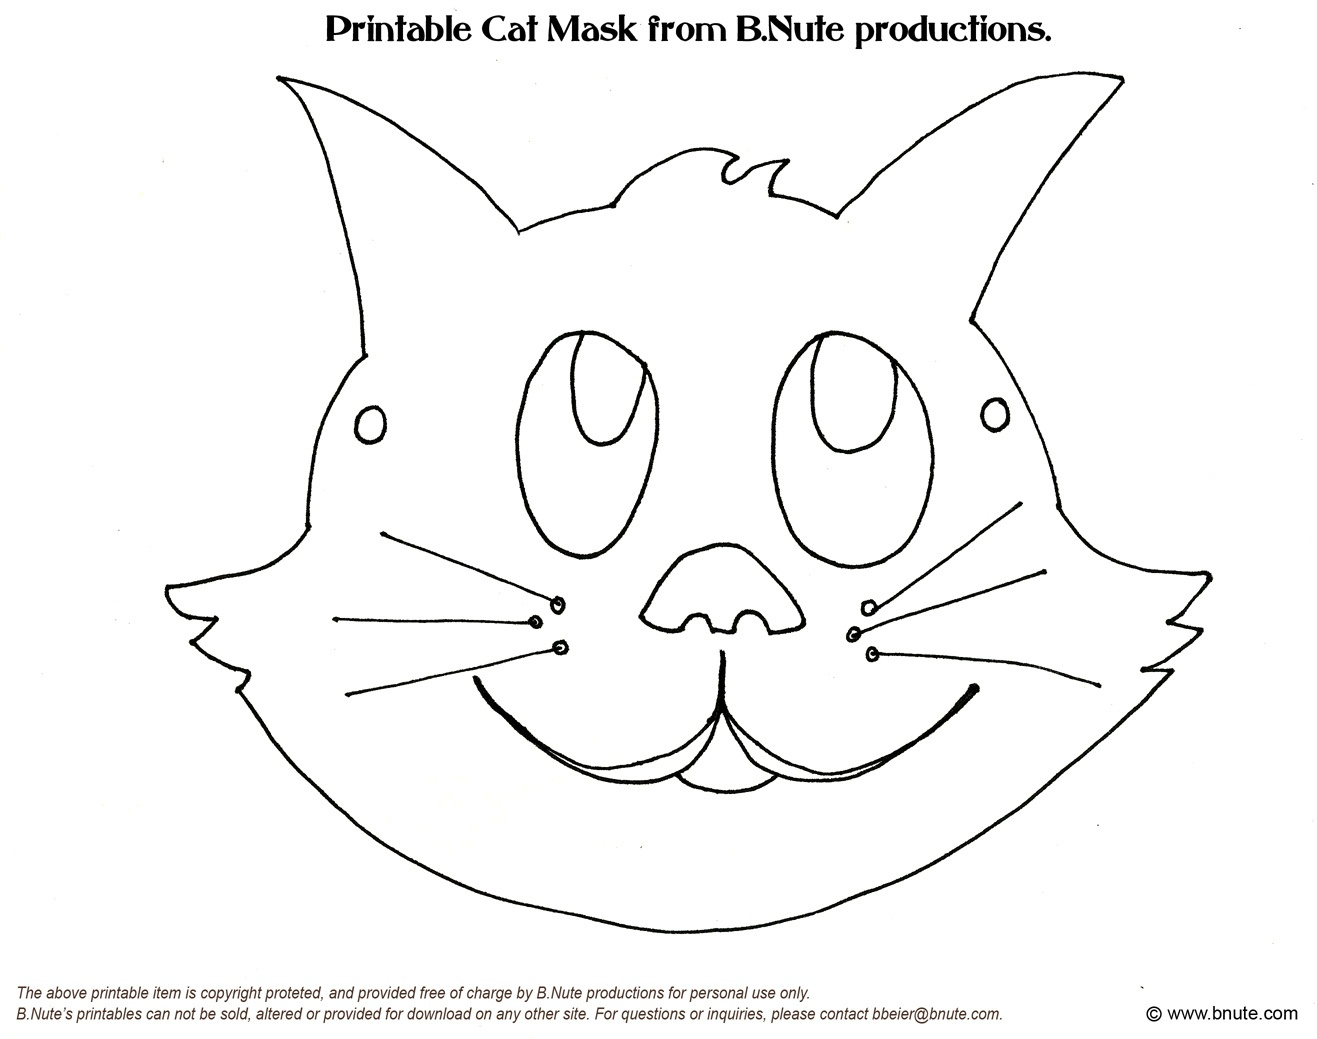 Free Cat Face Template, Download Free Clip Art, Free Clip Art On - Animal Face Masks Printable Free